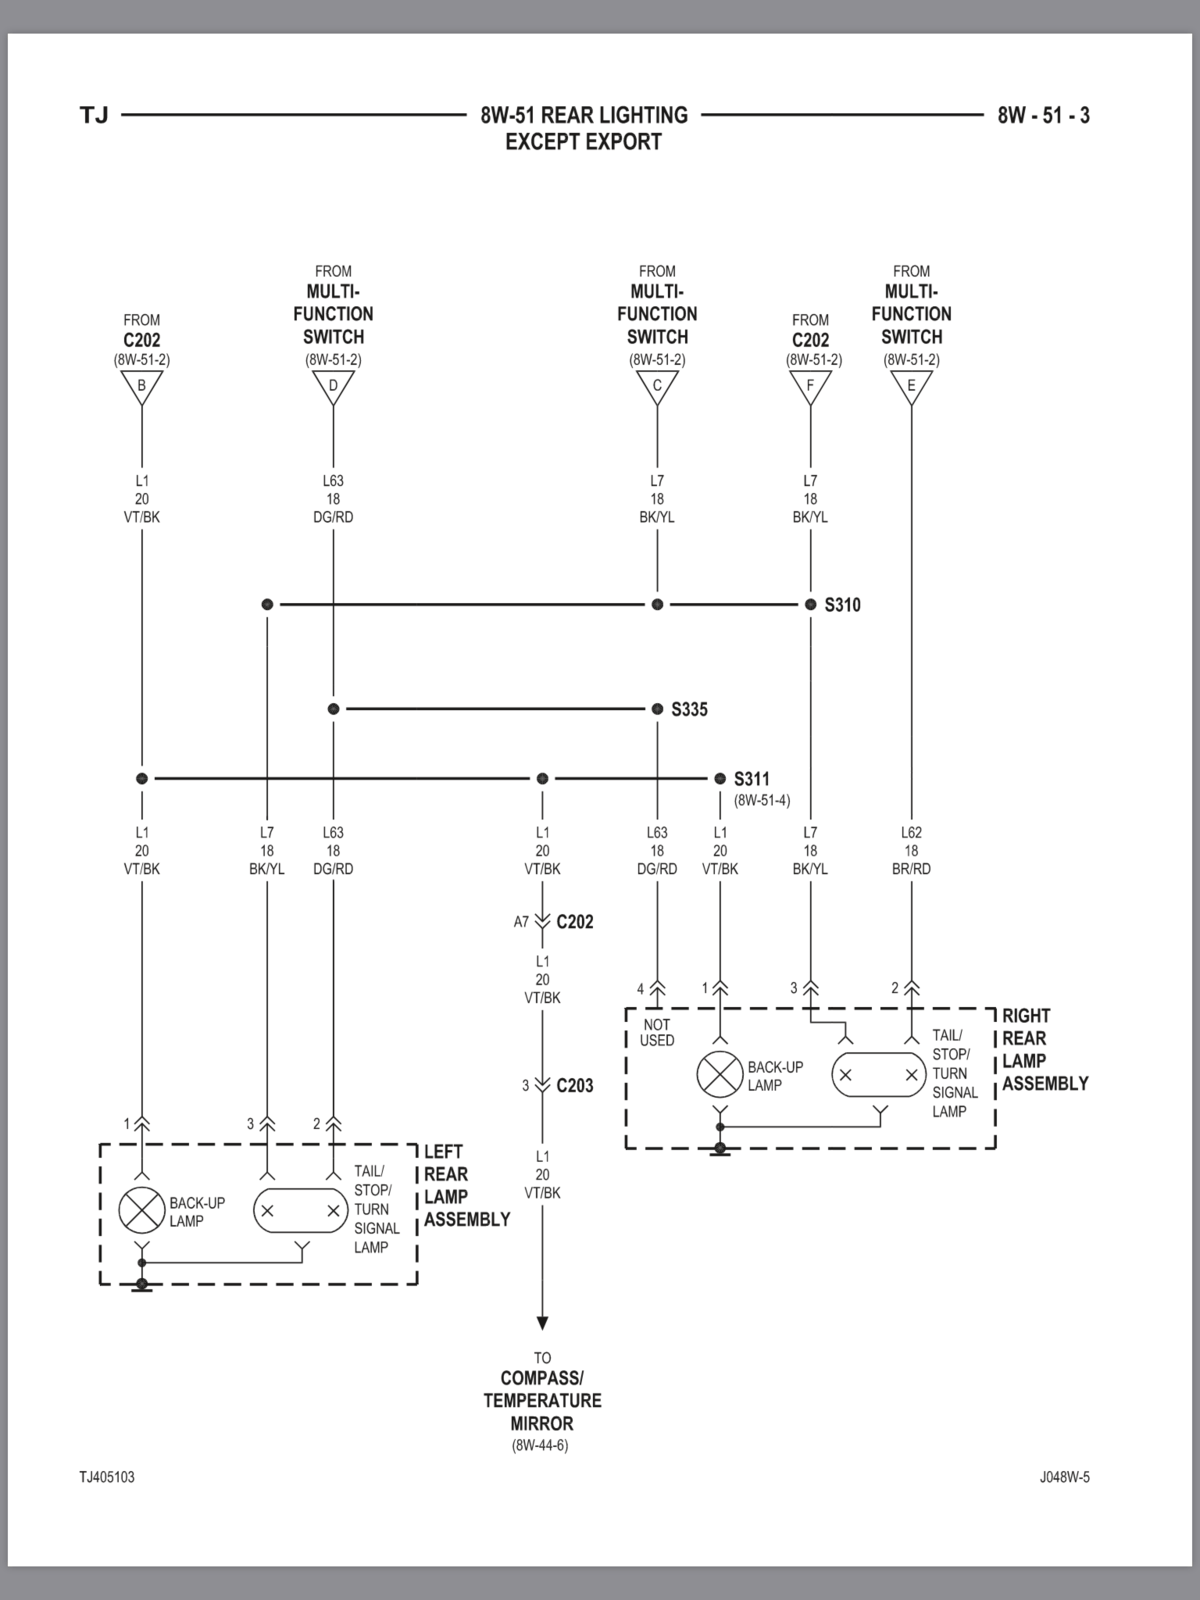 DIAGRAM] 97 Jeep Tj Wiring Diagram FULL Version HD Quality Wiring Diagram -  THROATDIAGRAM.SAINTMIHIEL-TOURISME.FR